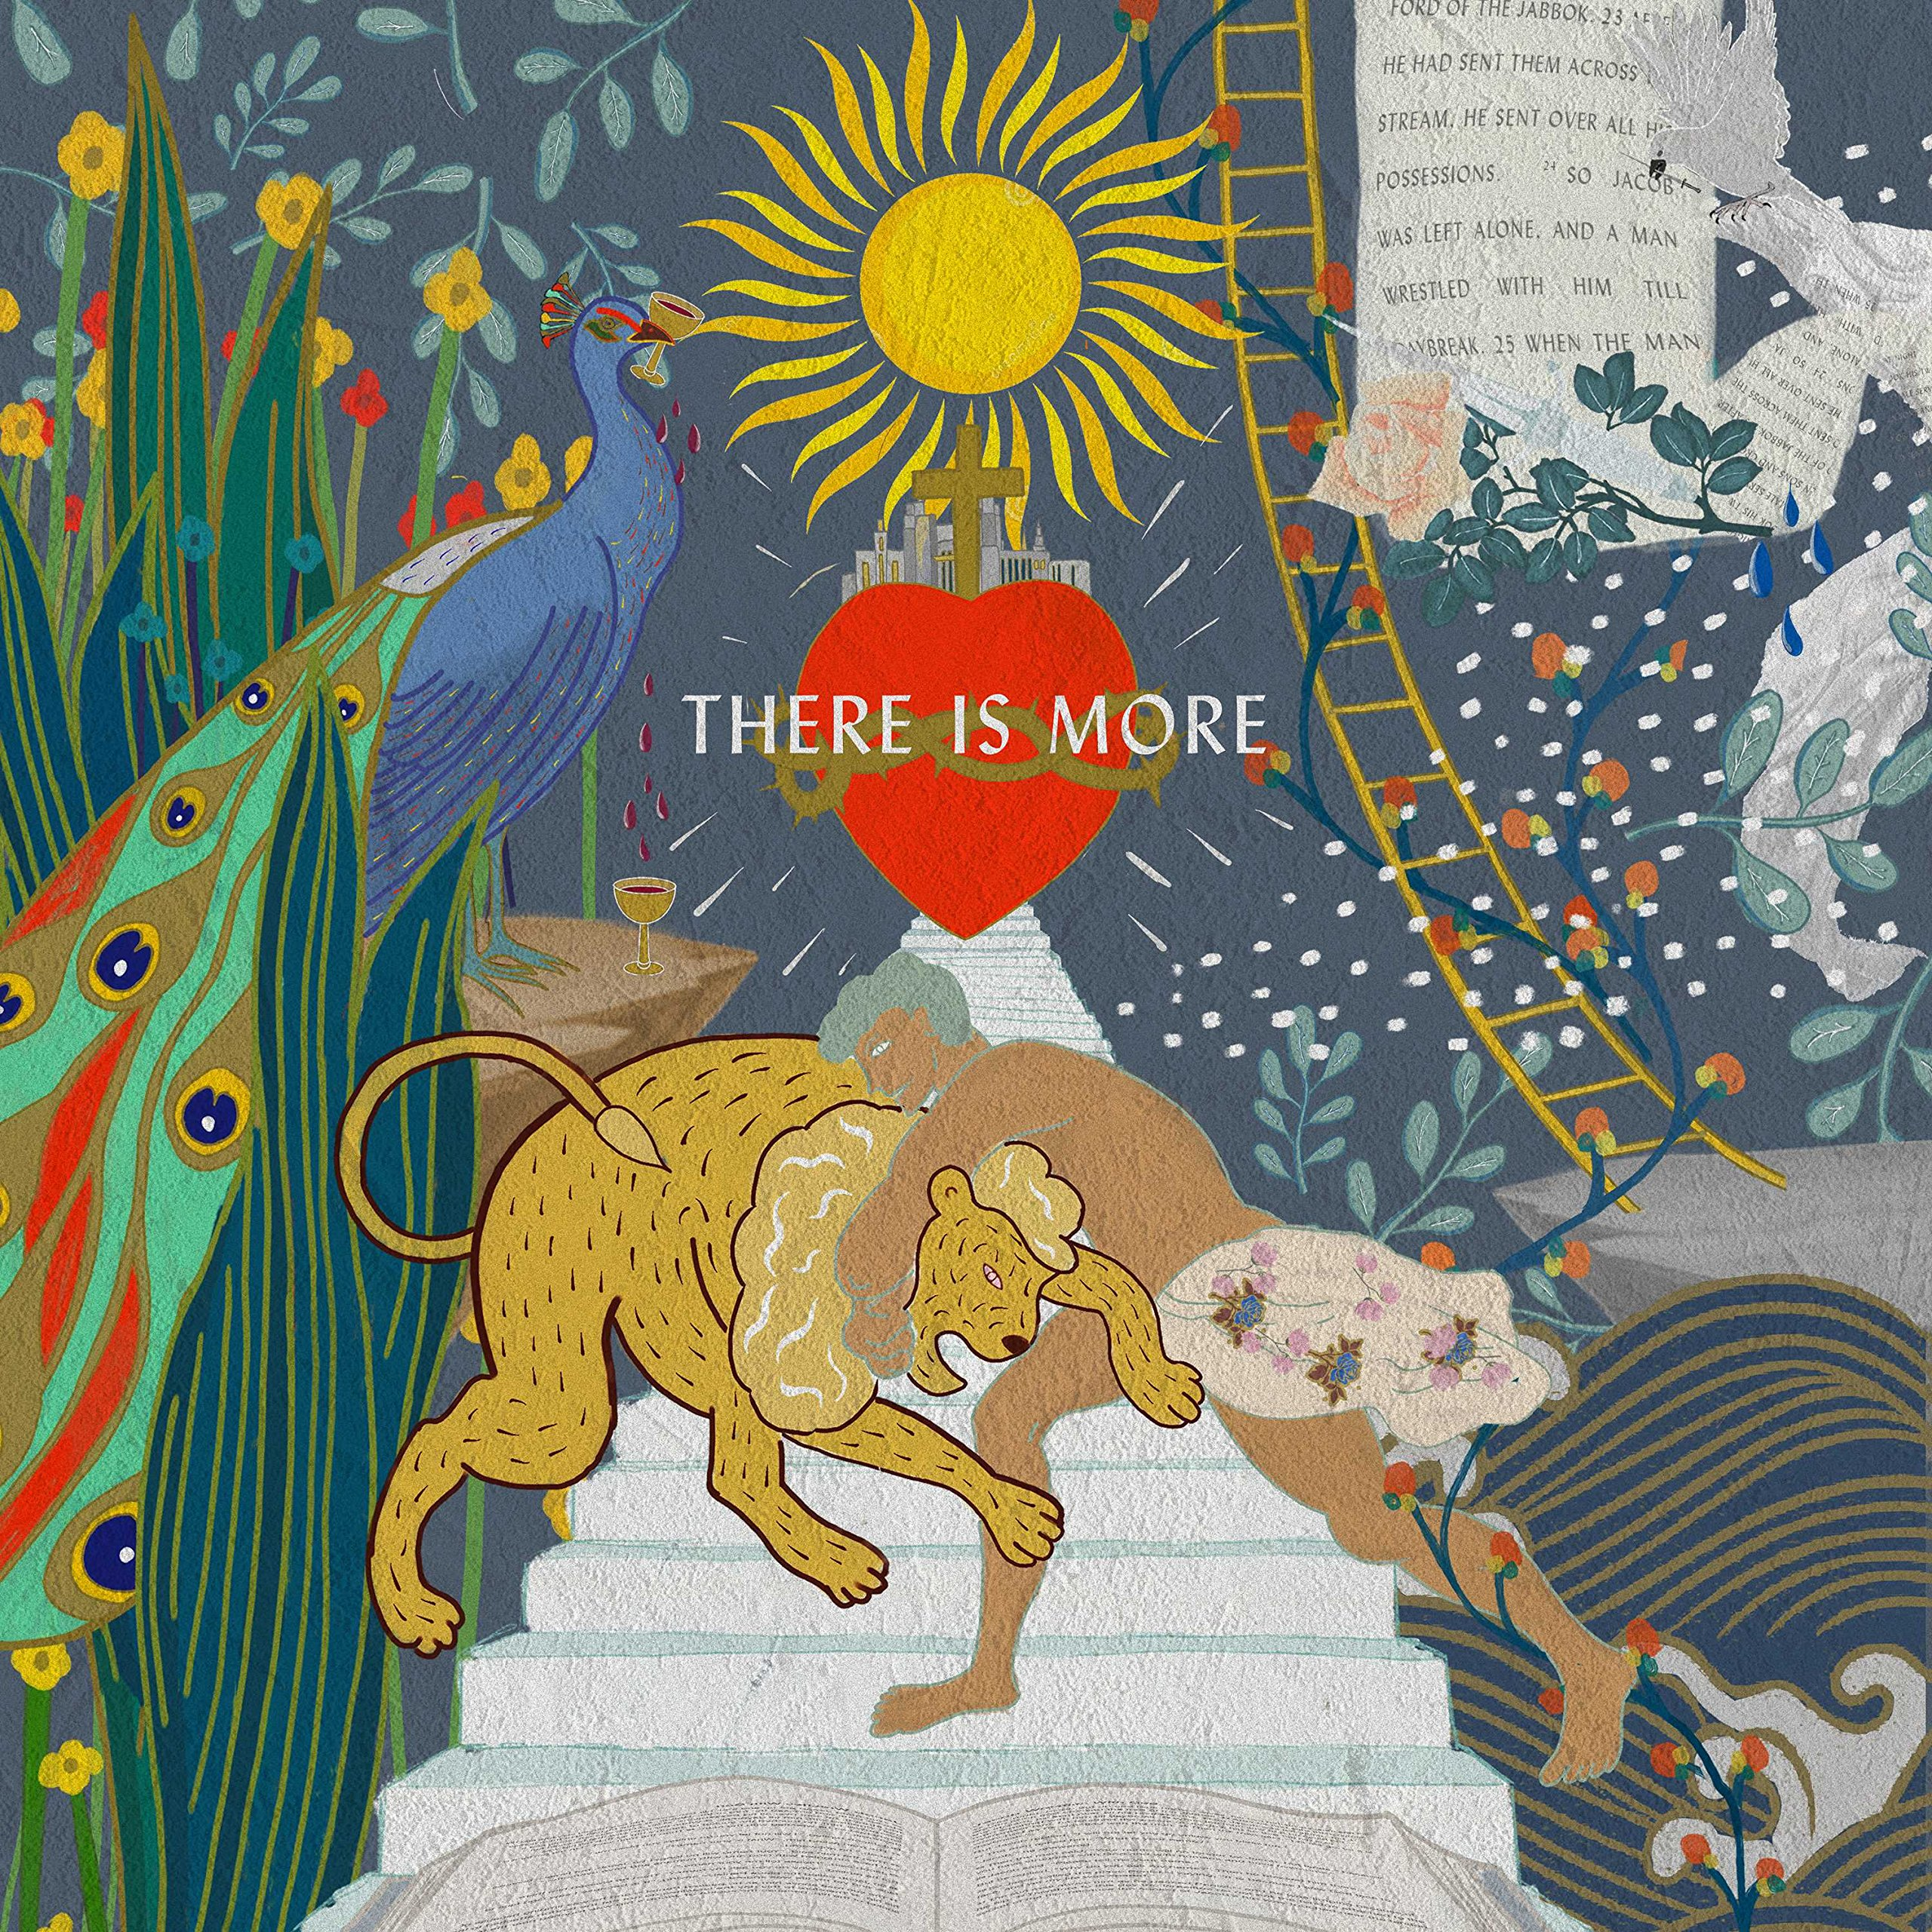 THERE IS MORE (Live In Sydney, Australia 2018) by Hillsong (Universal)